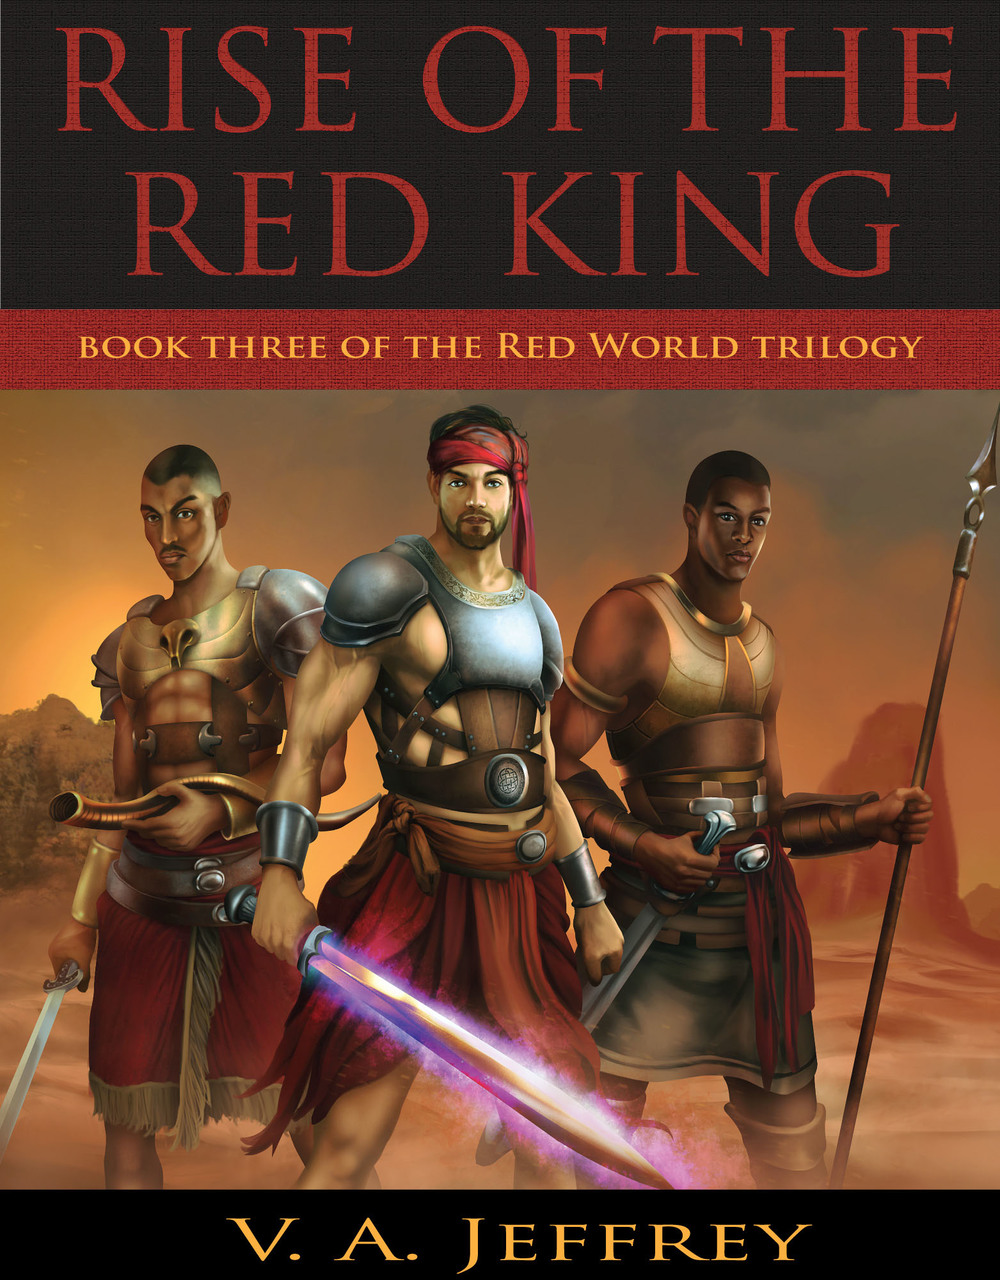 Rise of the Red King